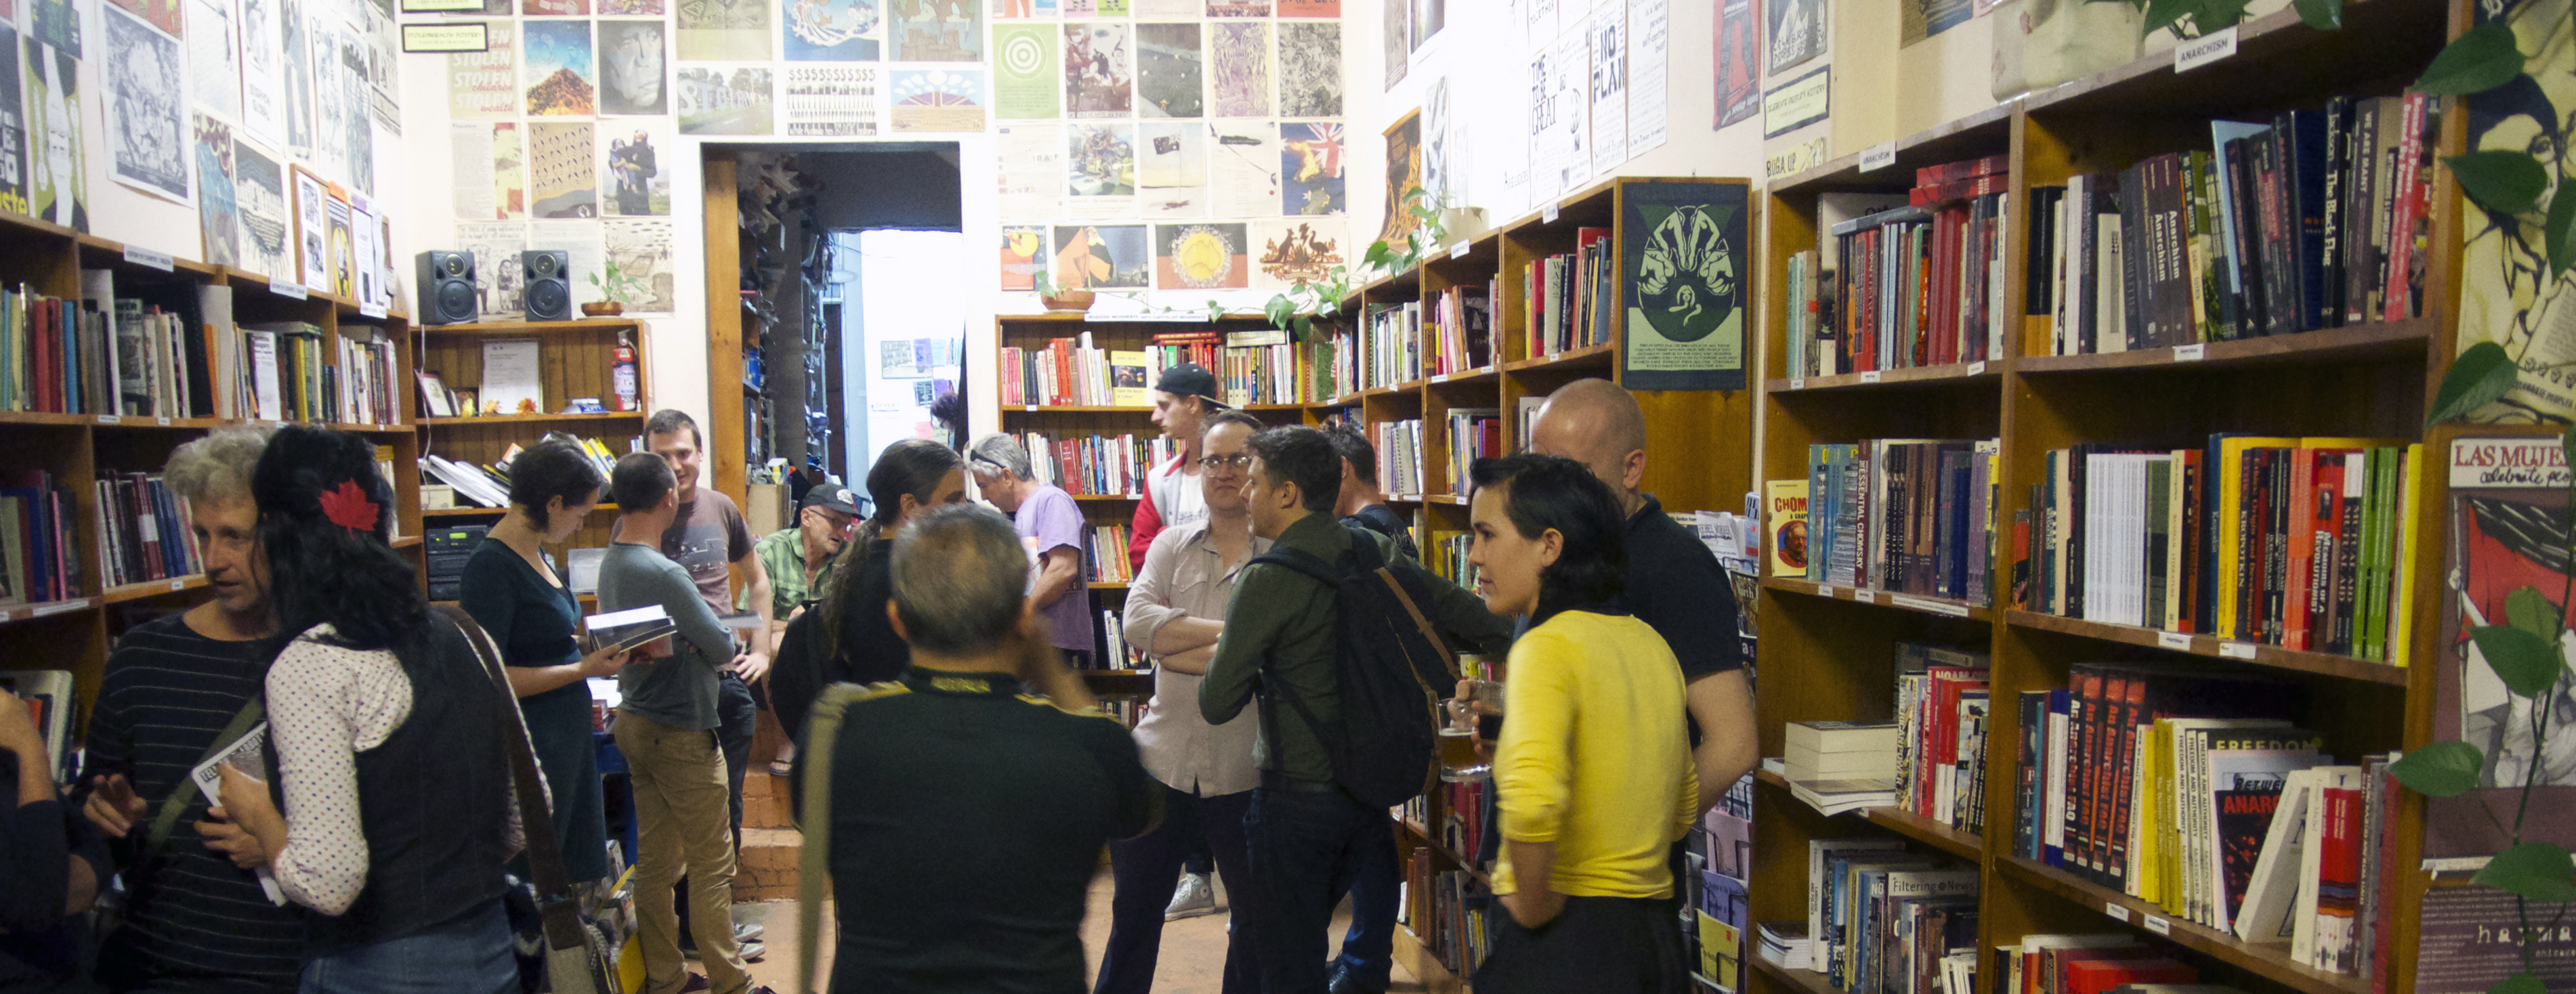 Jura Bookshop in 2013 at the launch of How to Make Trouble and Influence People